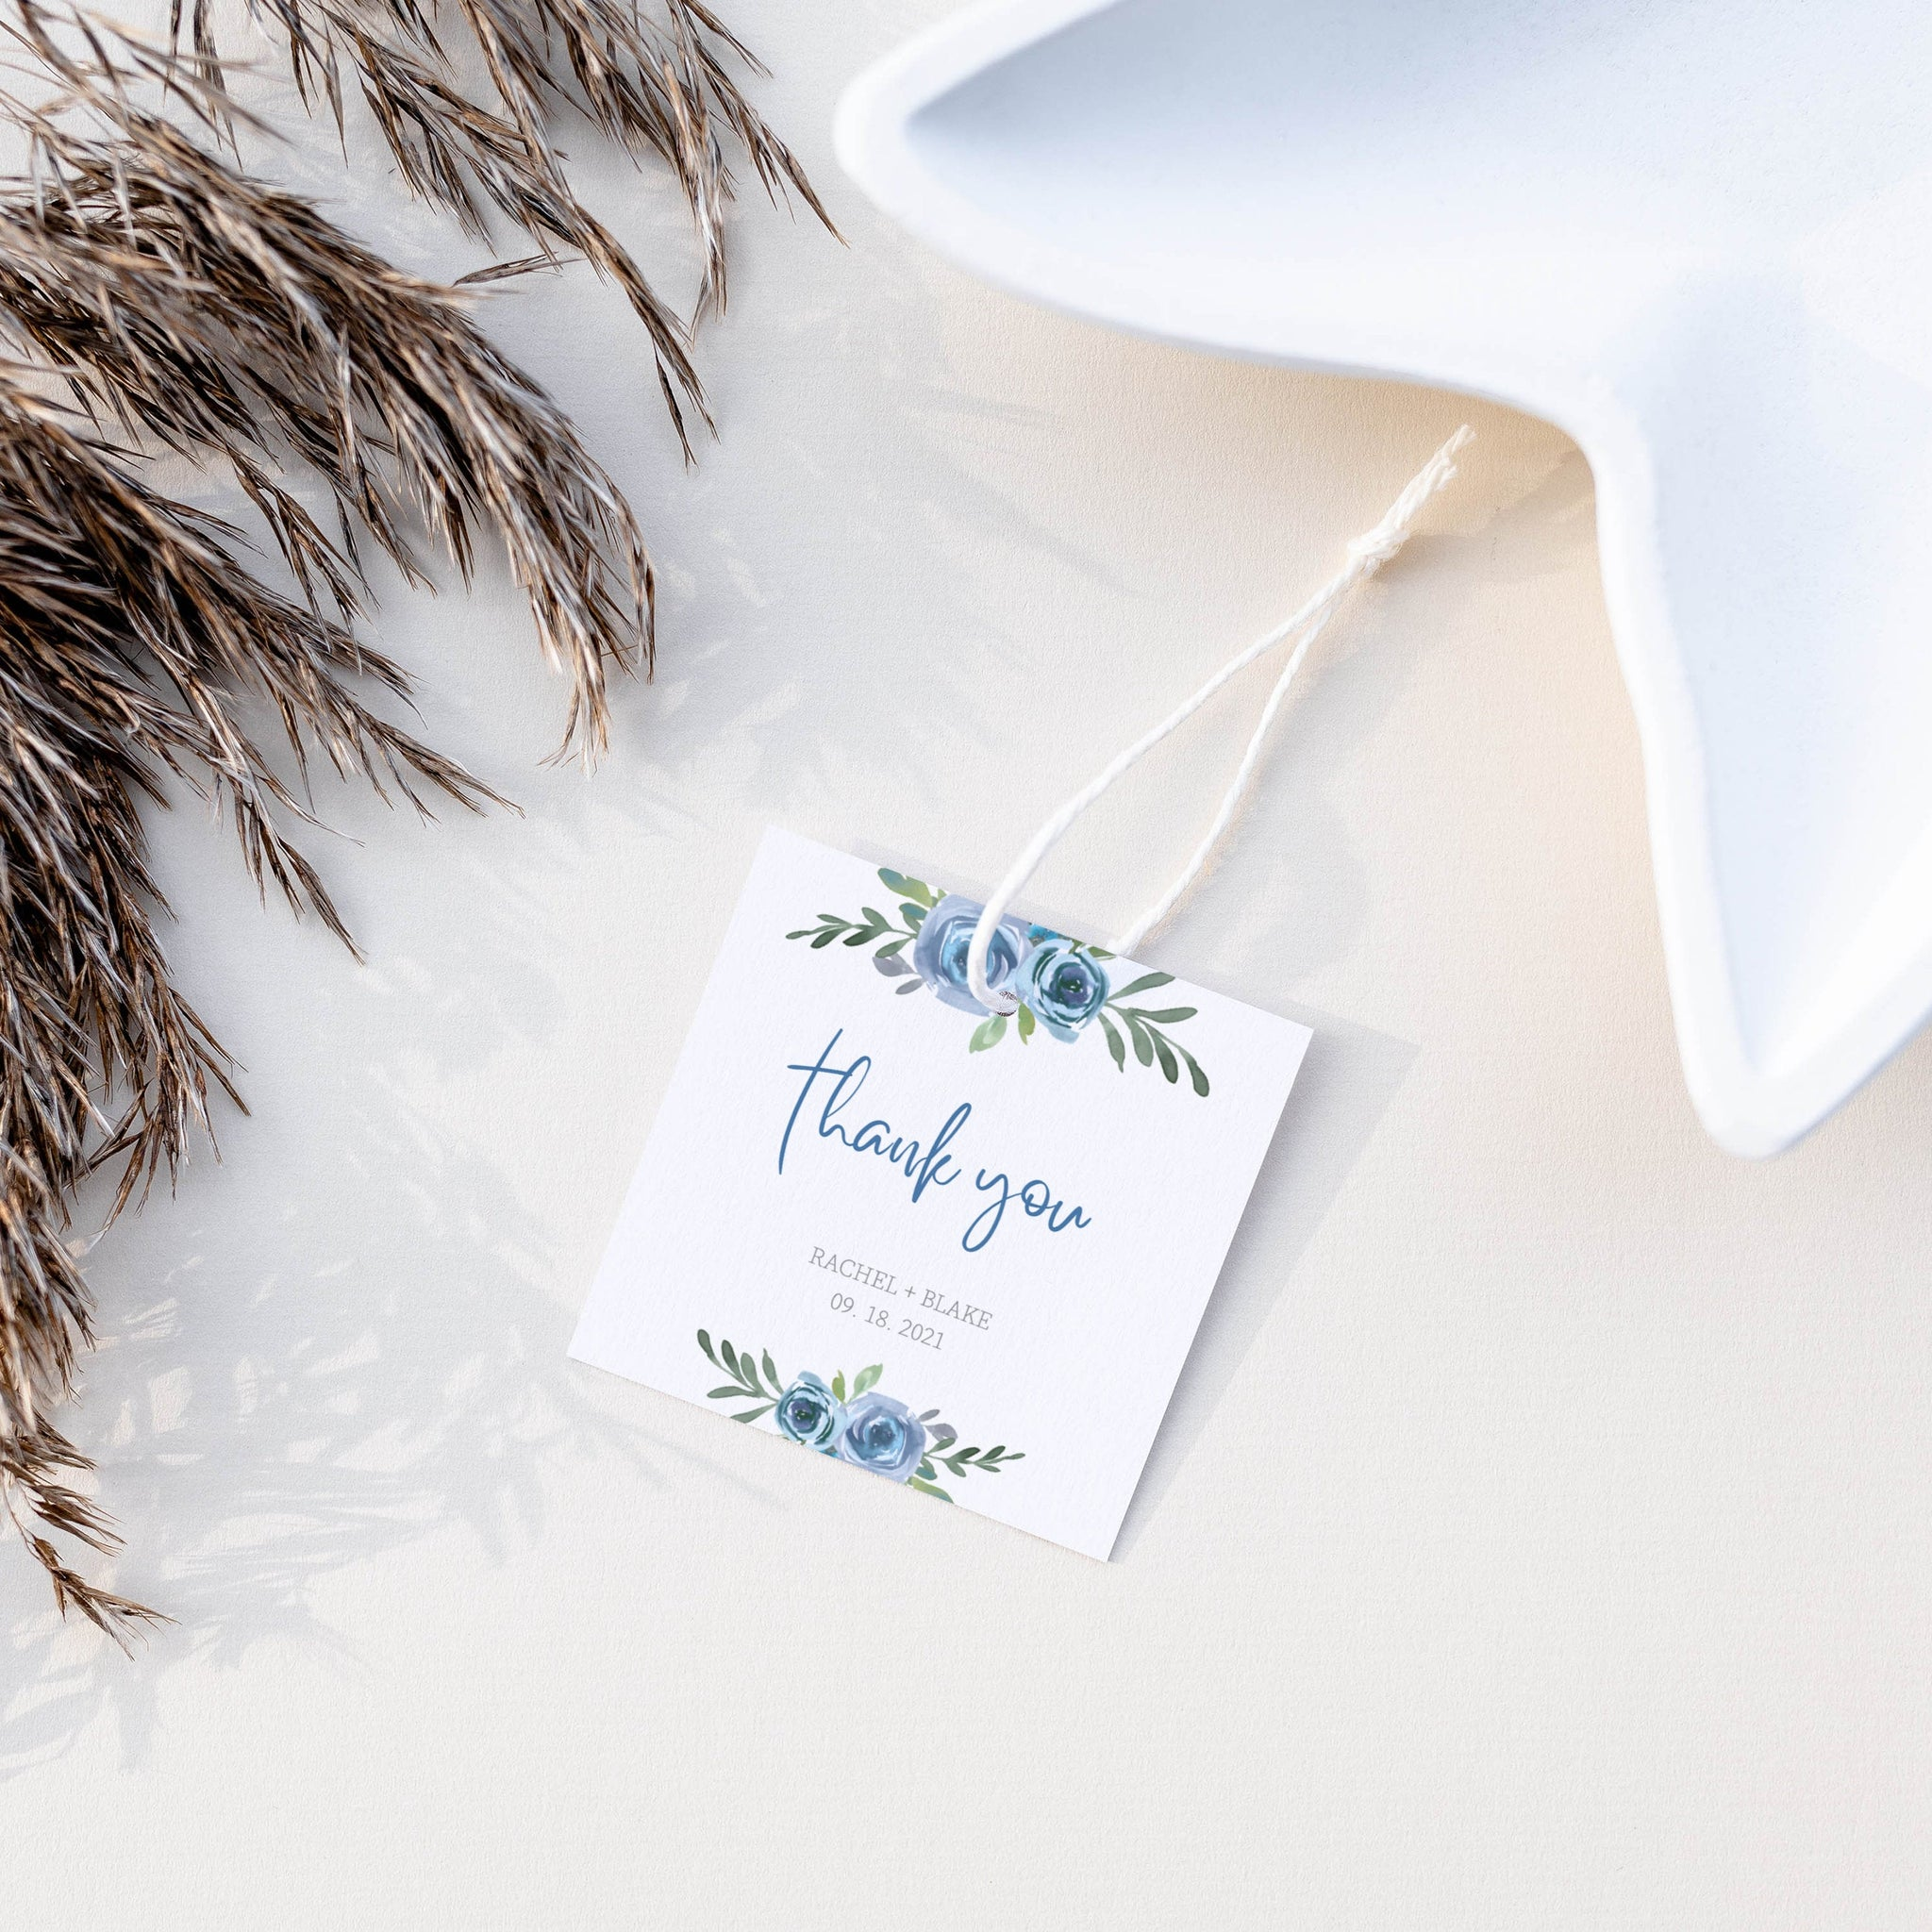 Personalized Wedding Favor Tags For Candles, Blue Floral Printable Thank You Tags for Wedding, Editable DIGITAL DOWNLOAD BF100